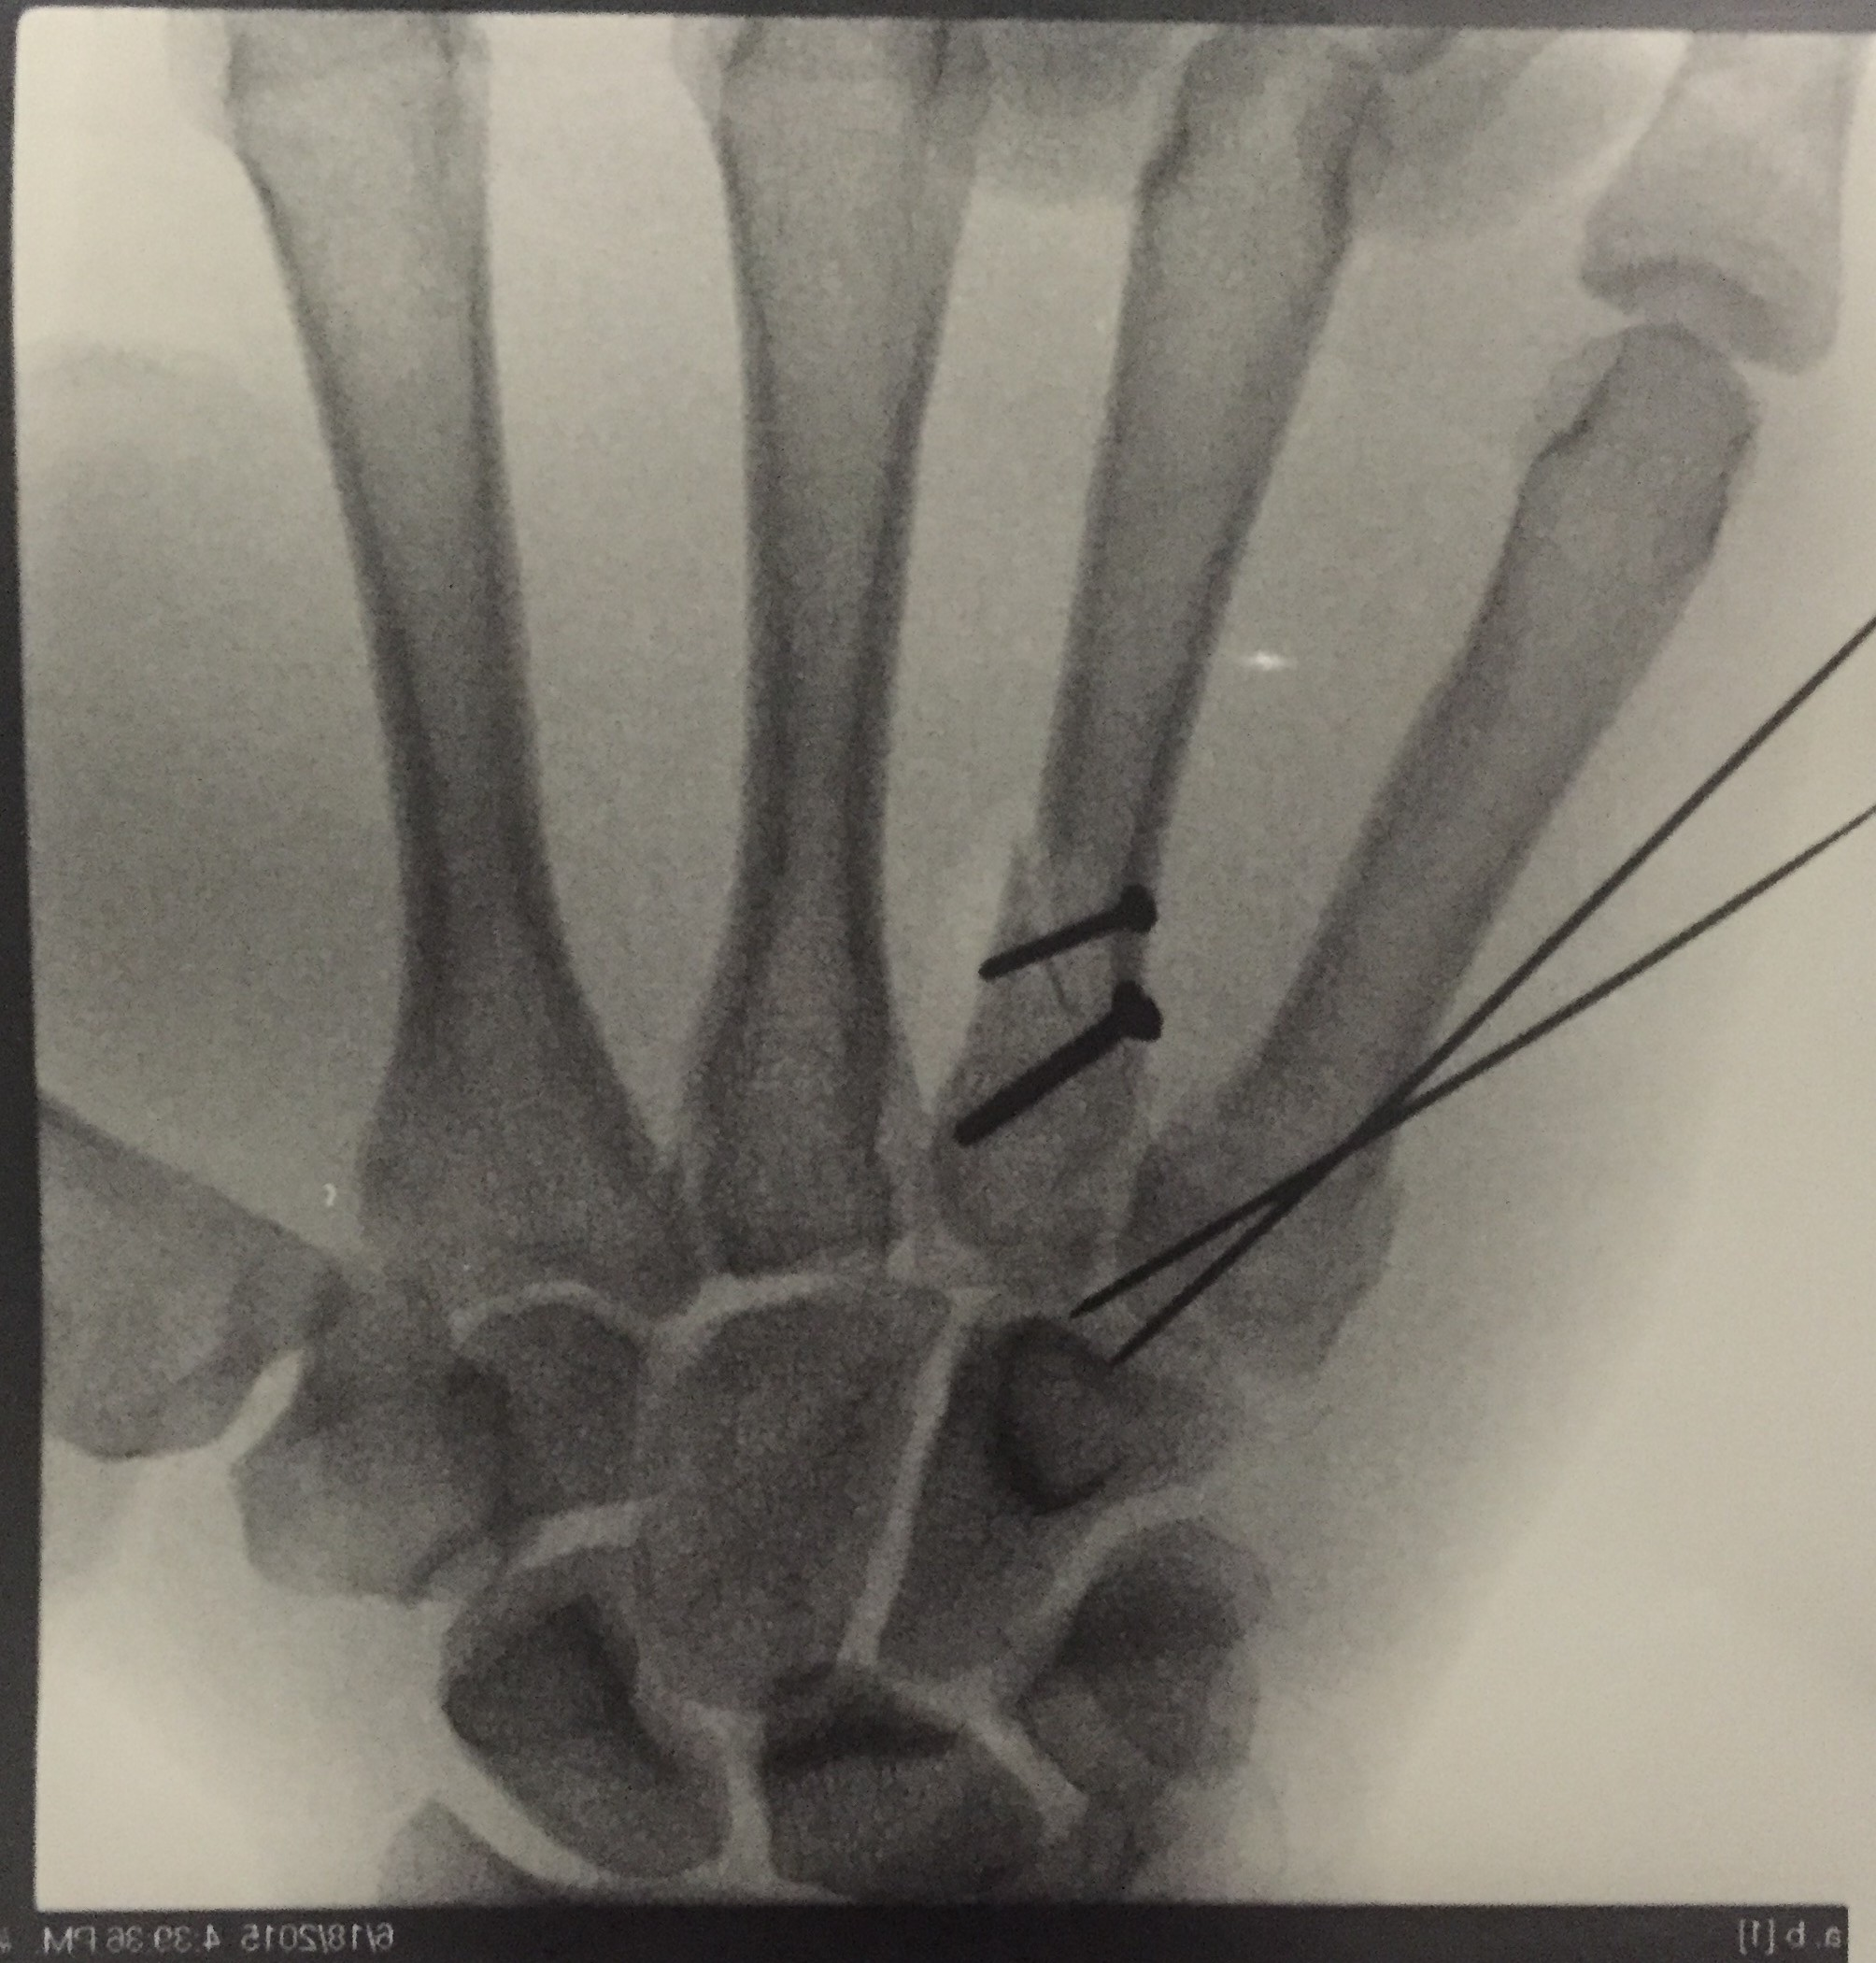 Avery's hand after surgery